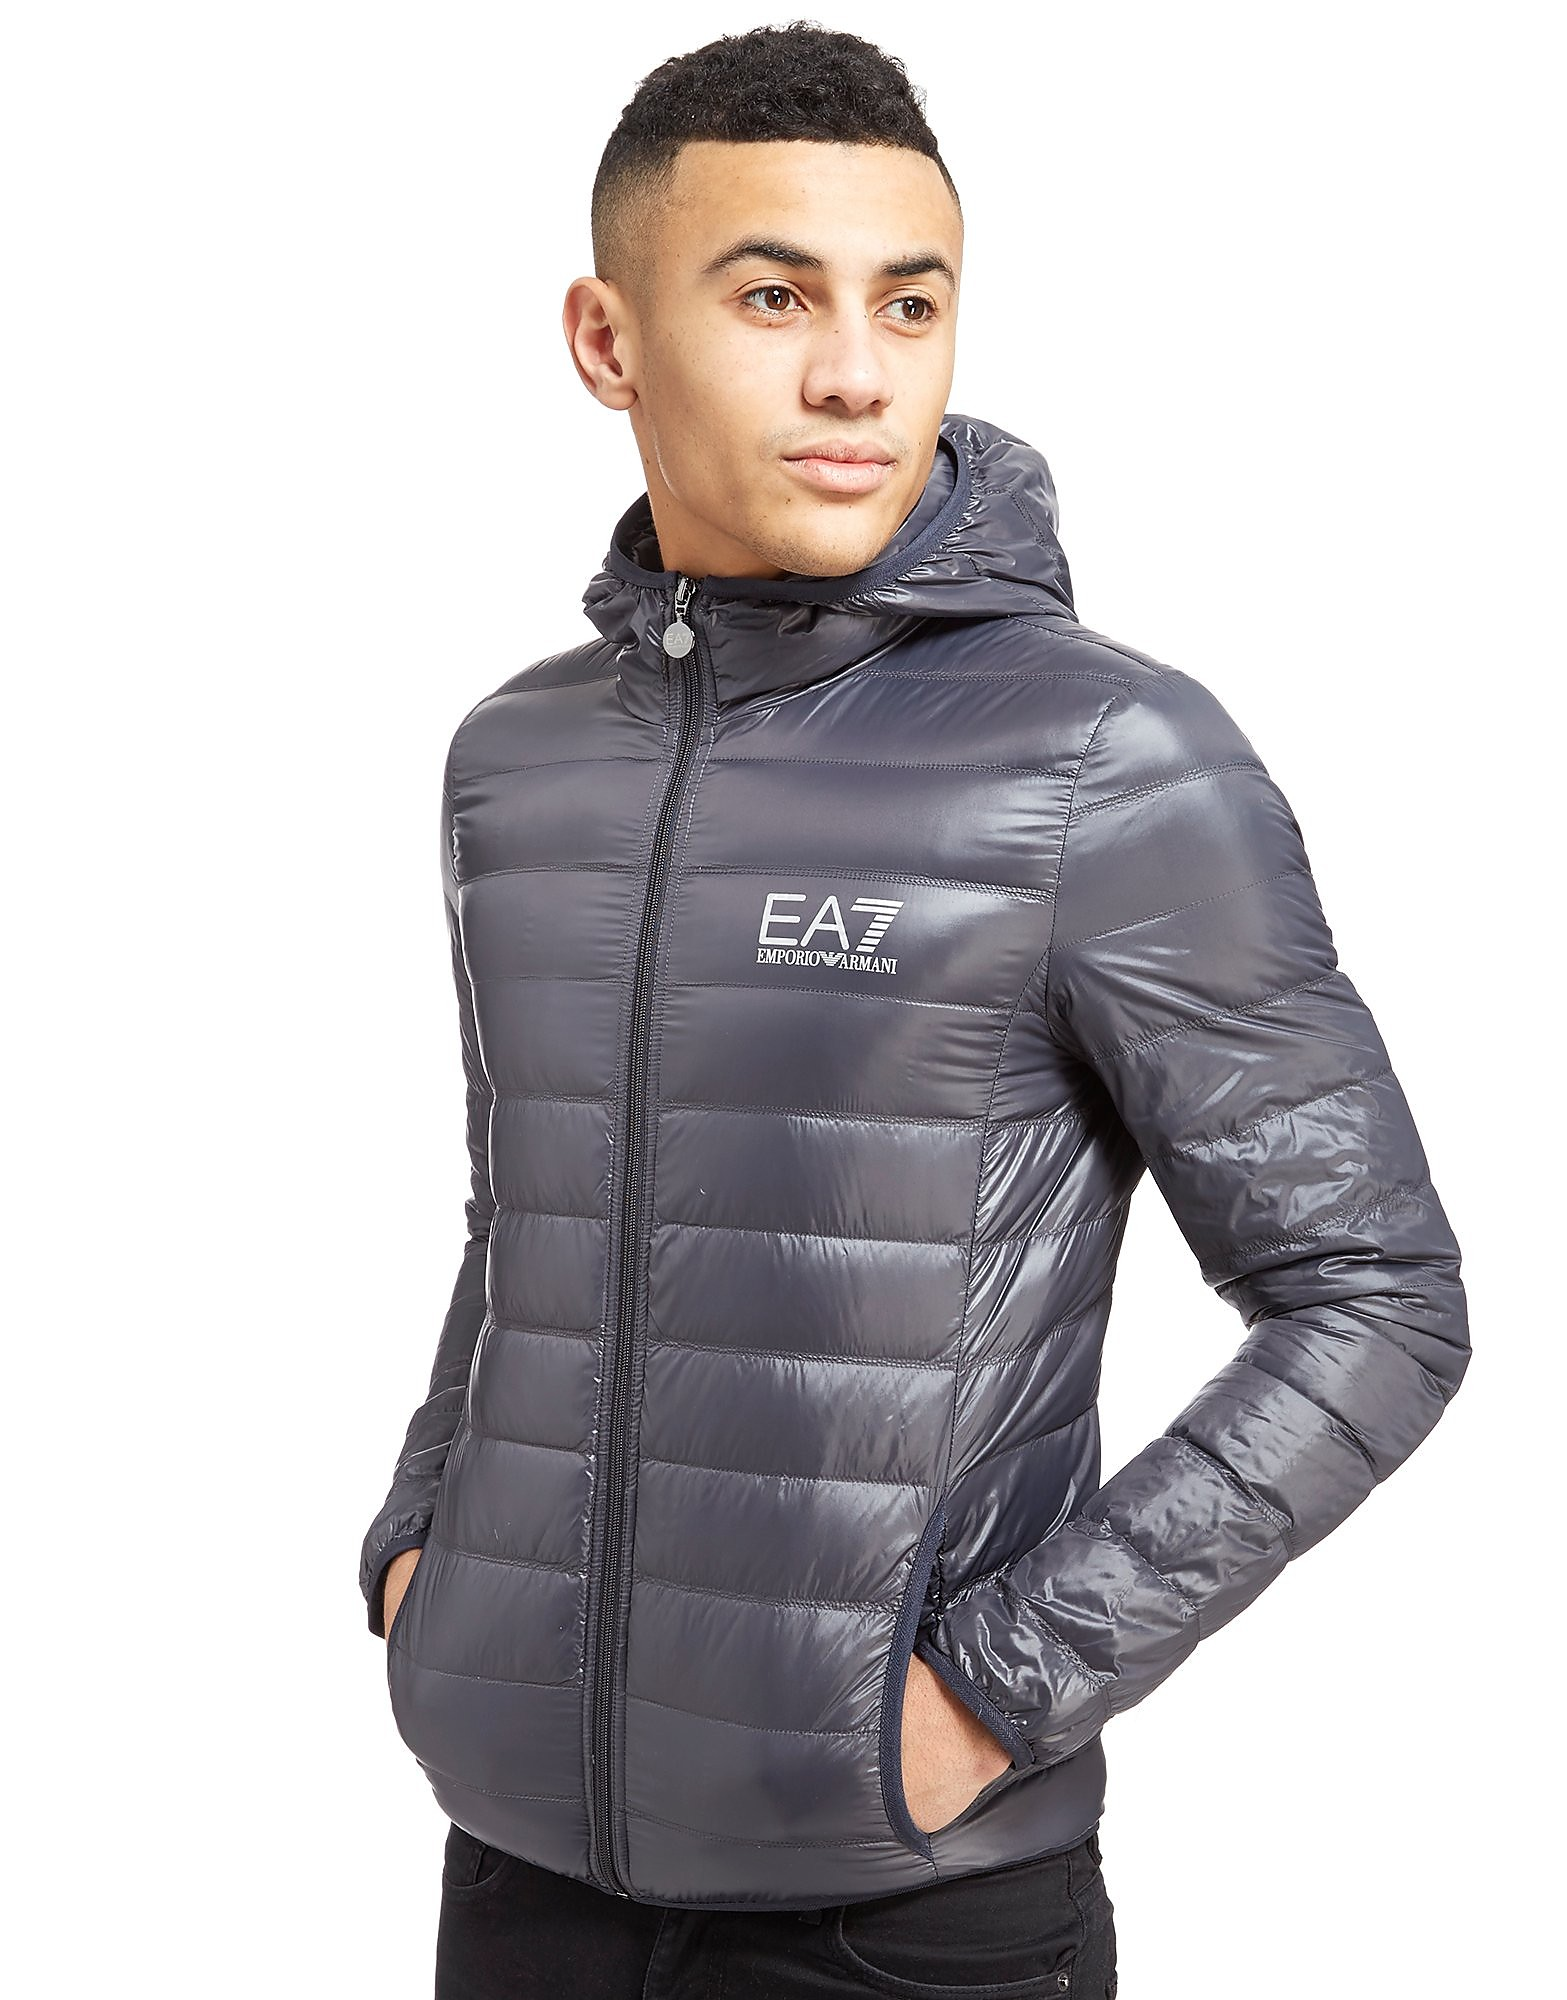 Emporio Armani EA7 Bubble Down Jacket